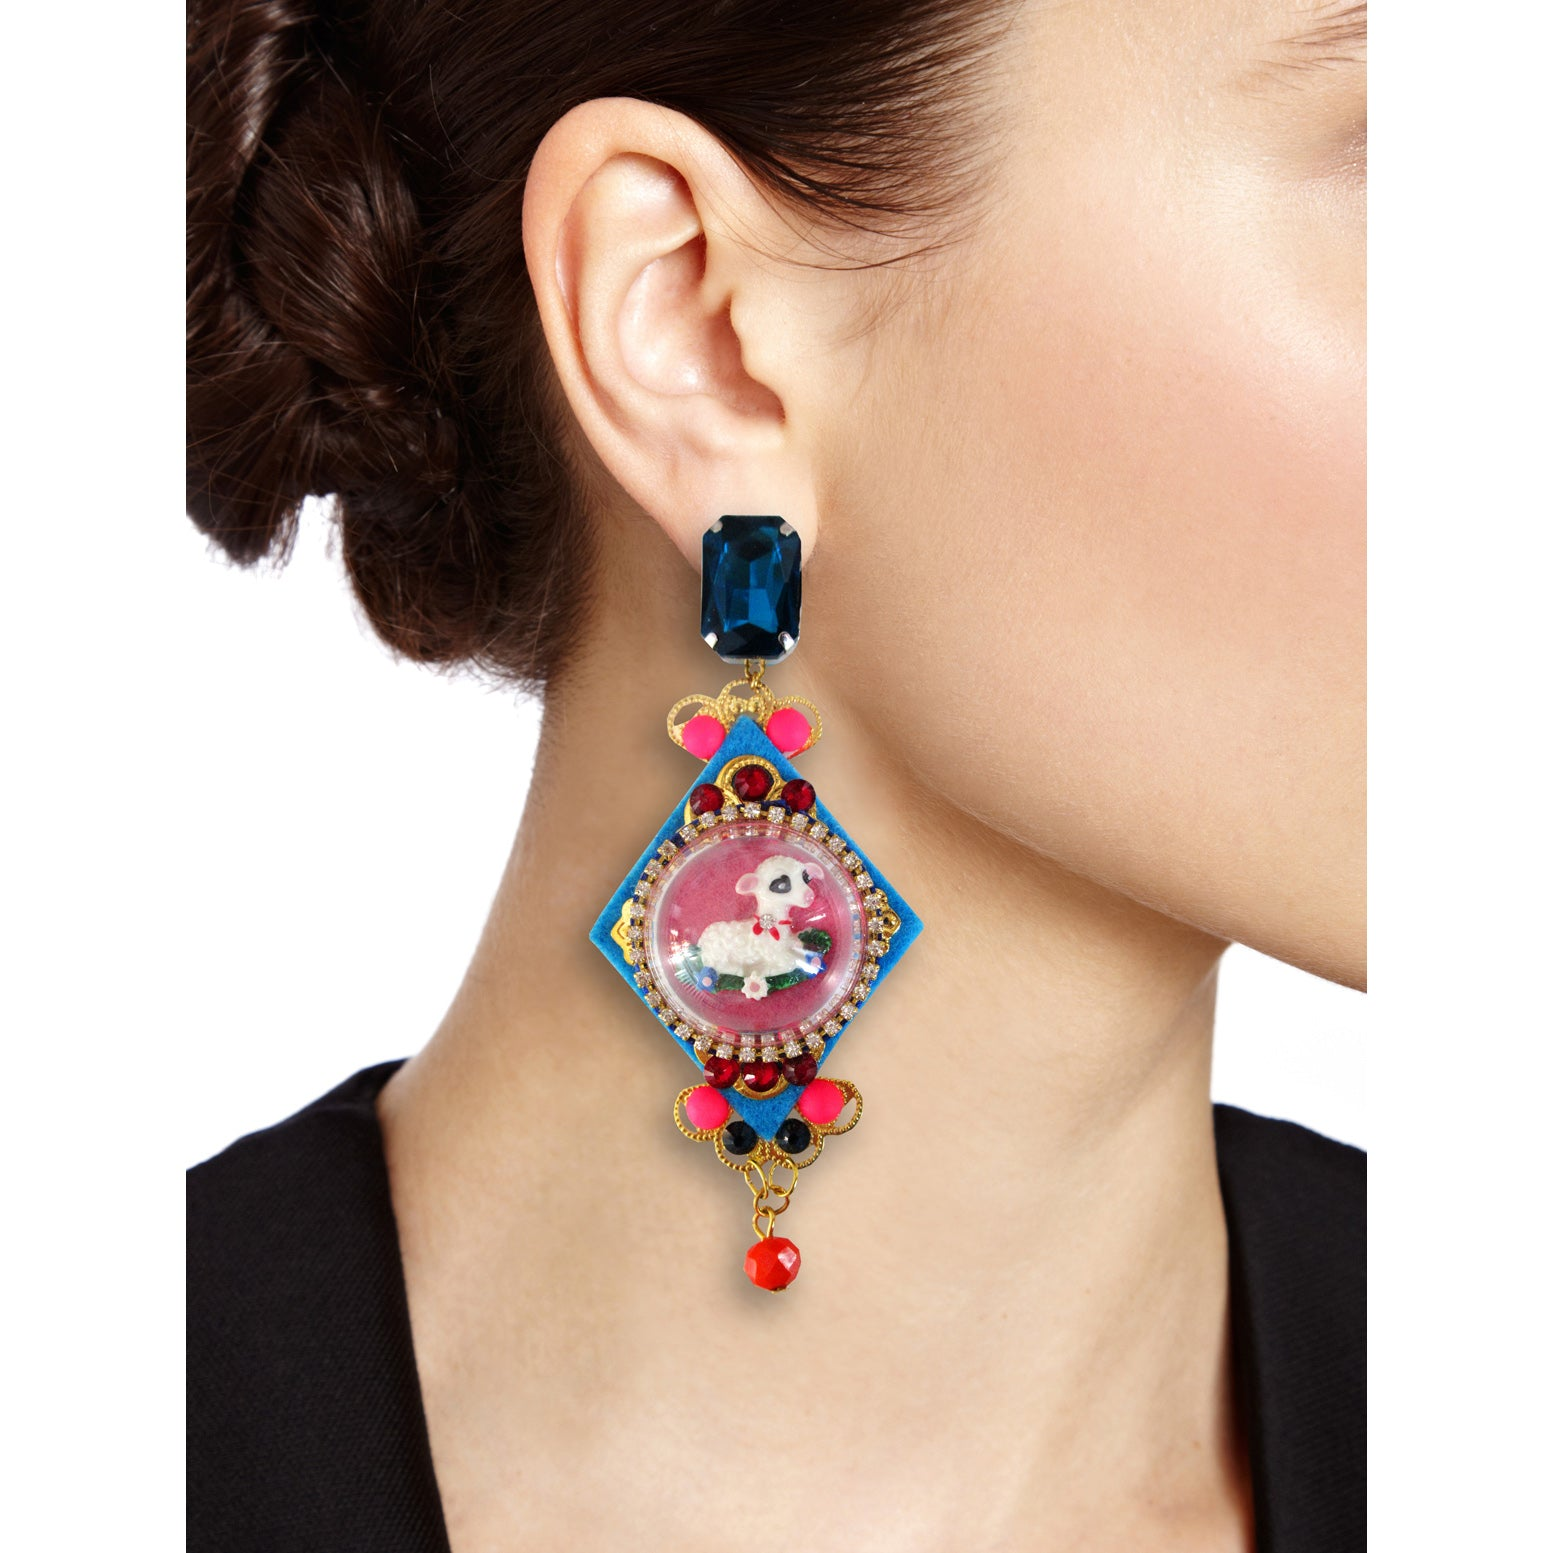 mouchkine jewelry paris couture luxury pendant earrings